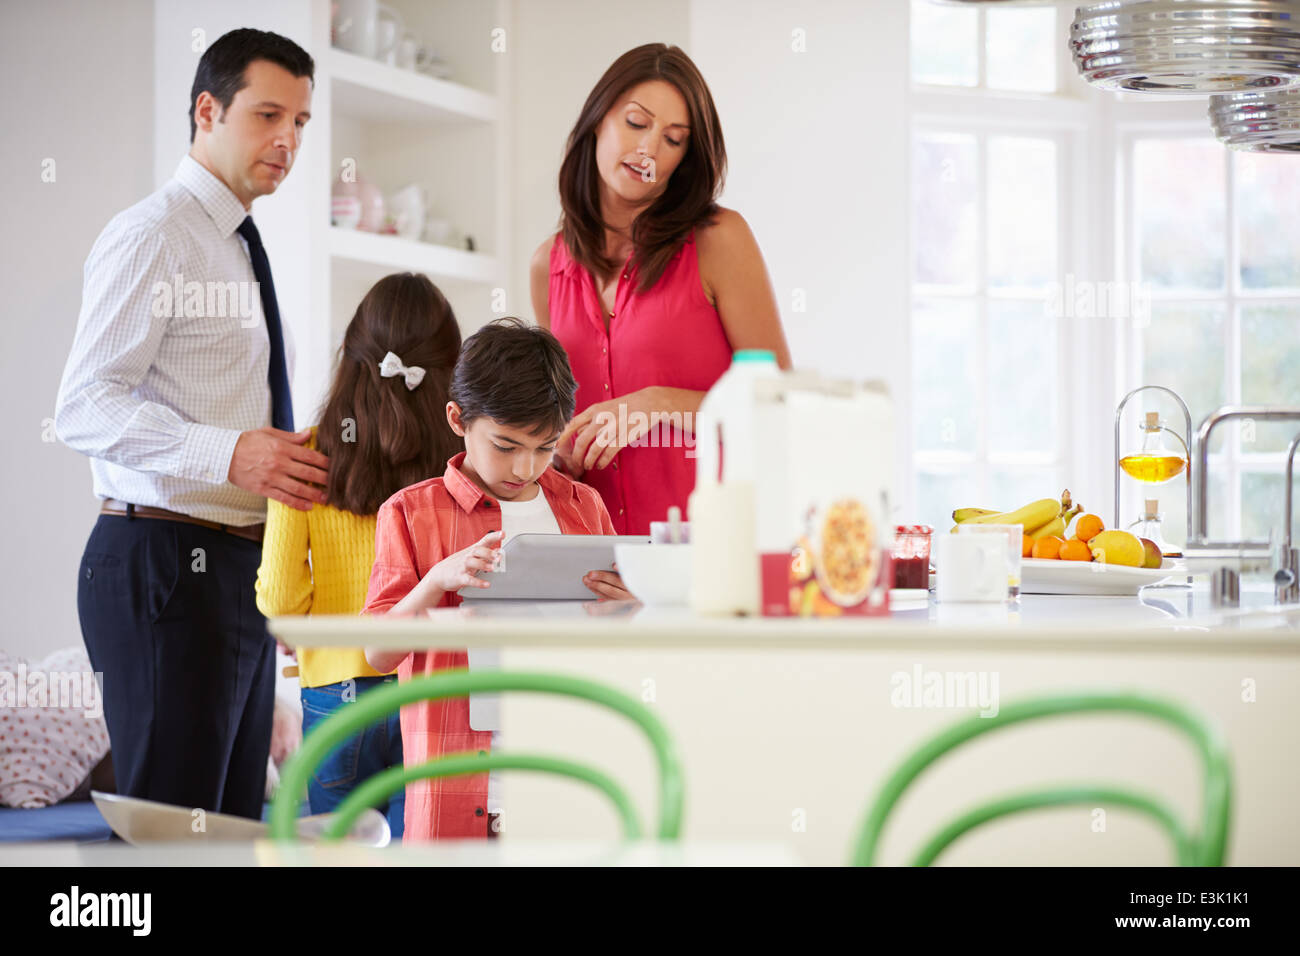 Family Helping To Clear Up After Breakfast - Stock Image